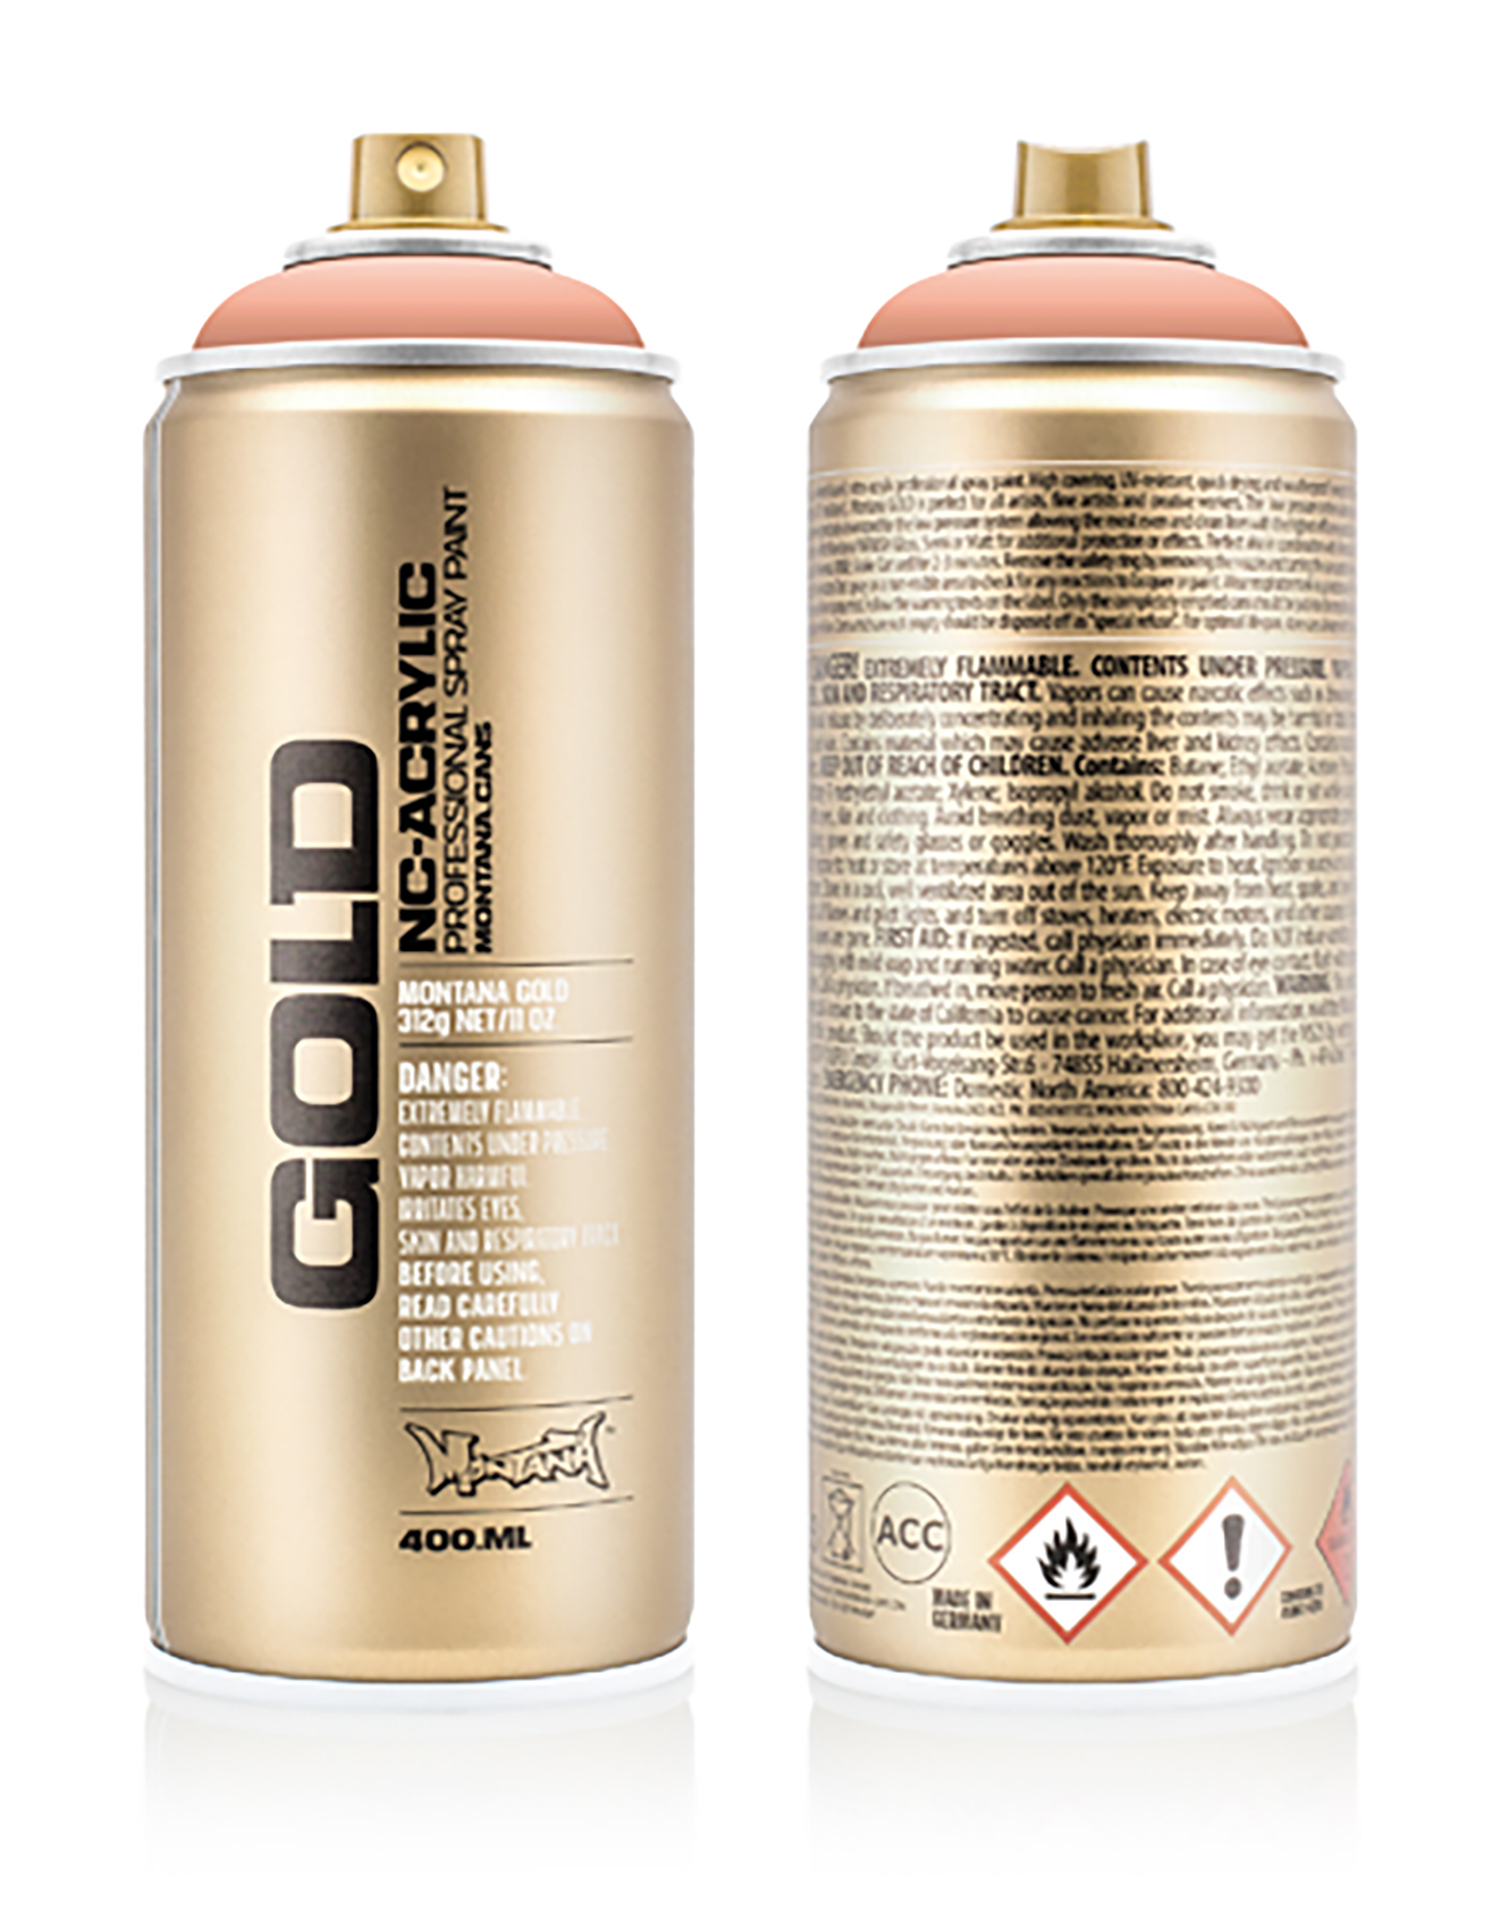 MONTANA-GOLD-SPRAY-400ML-G-8070